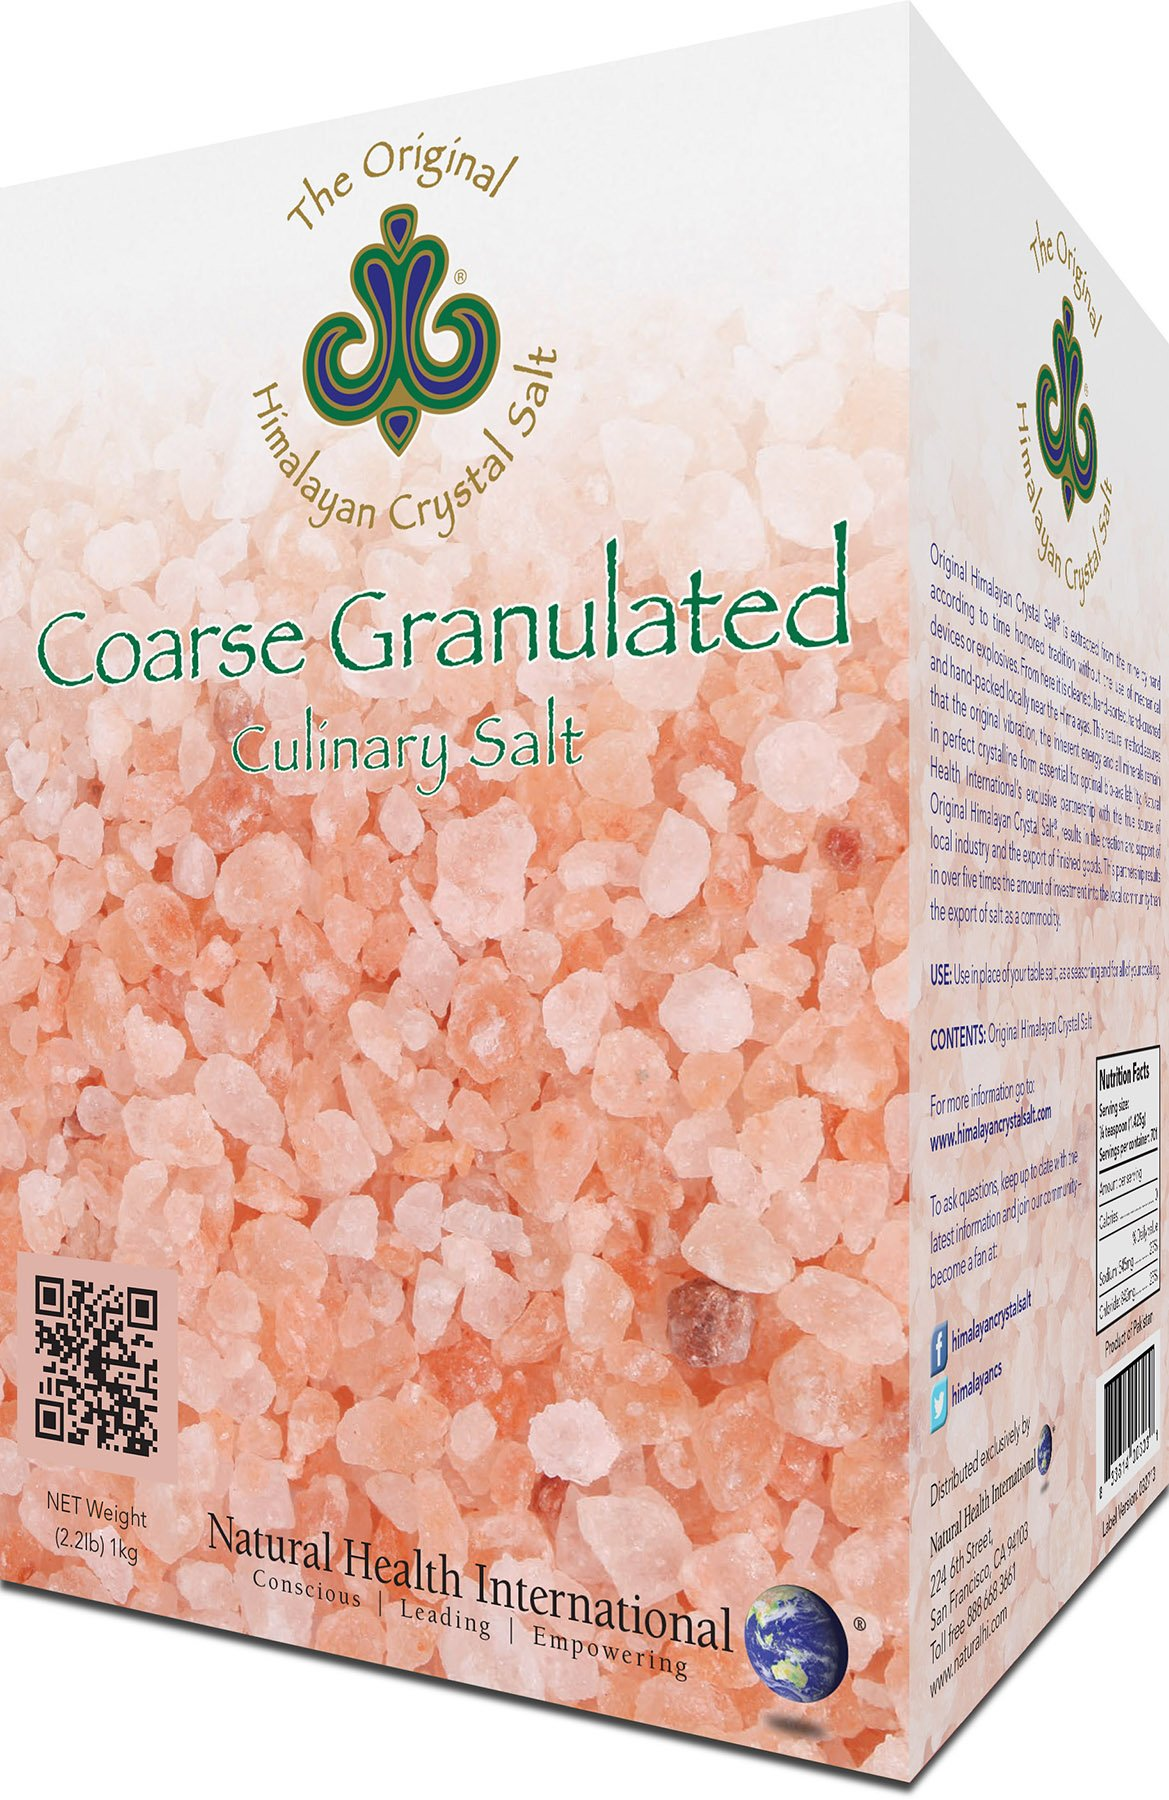 Original Himalayan Crystal Salt - Coarse Granulated, 2.2lb (1kg) - Culinary Salt for Healthy Cooking - Mineral Rich Salt with Great Flavor